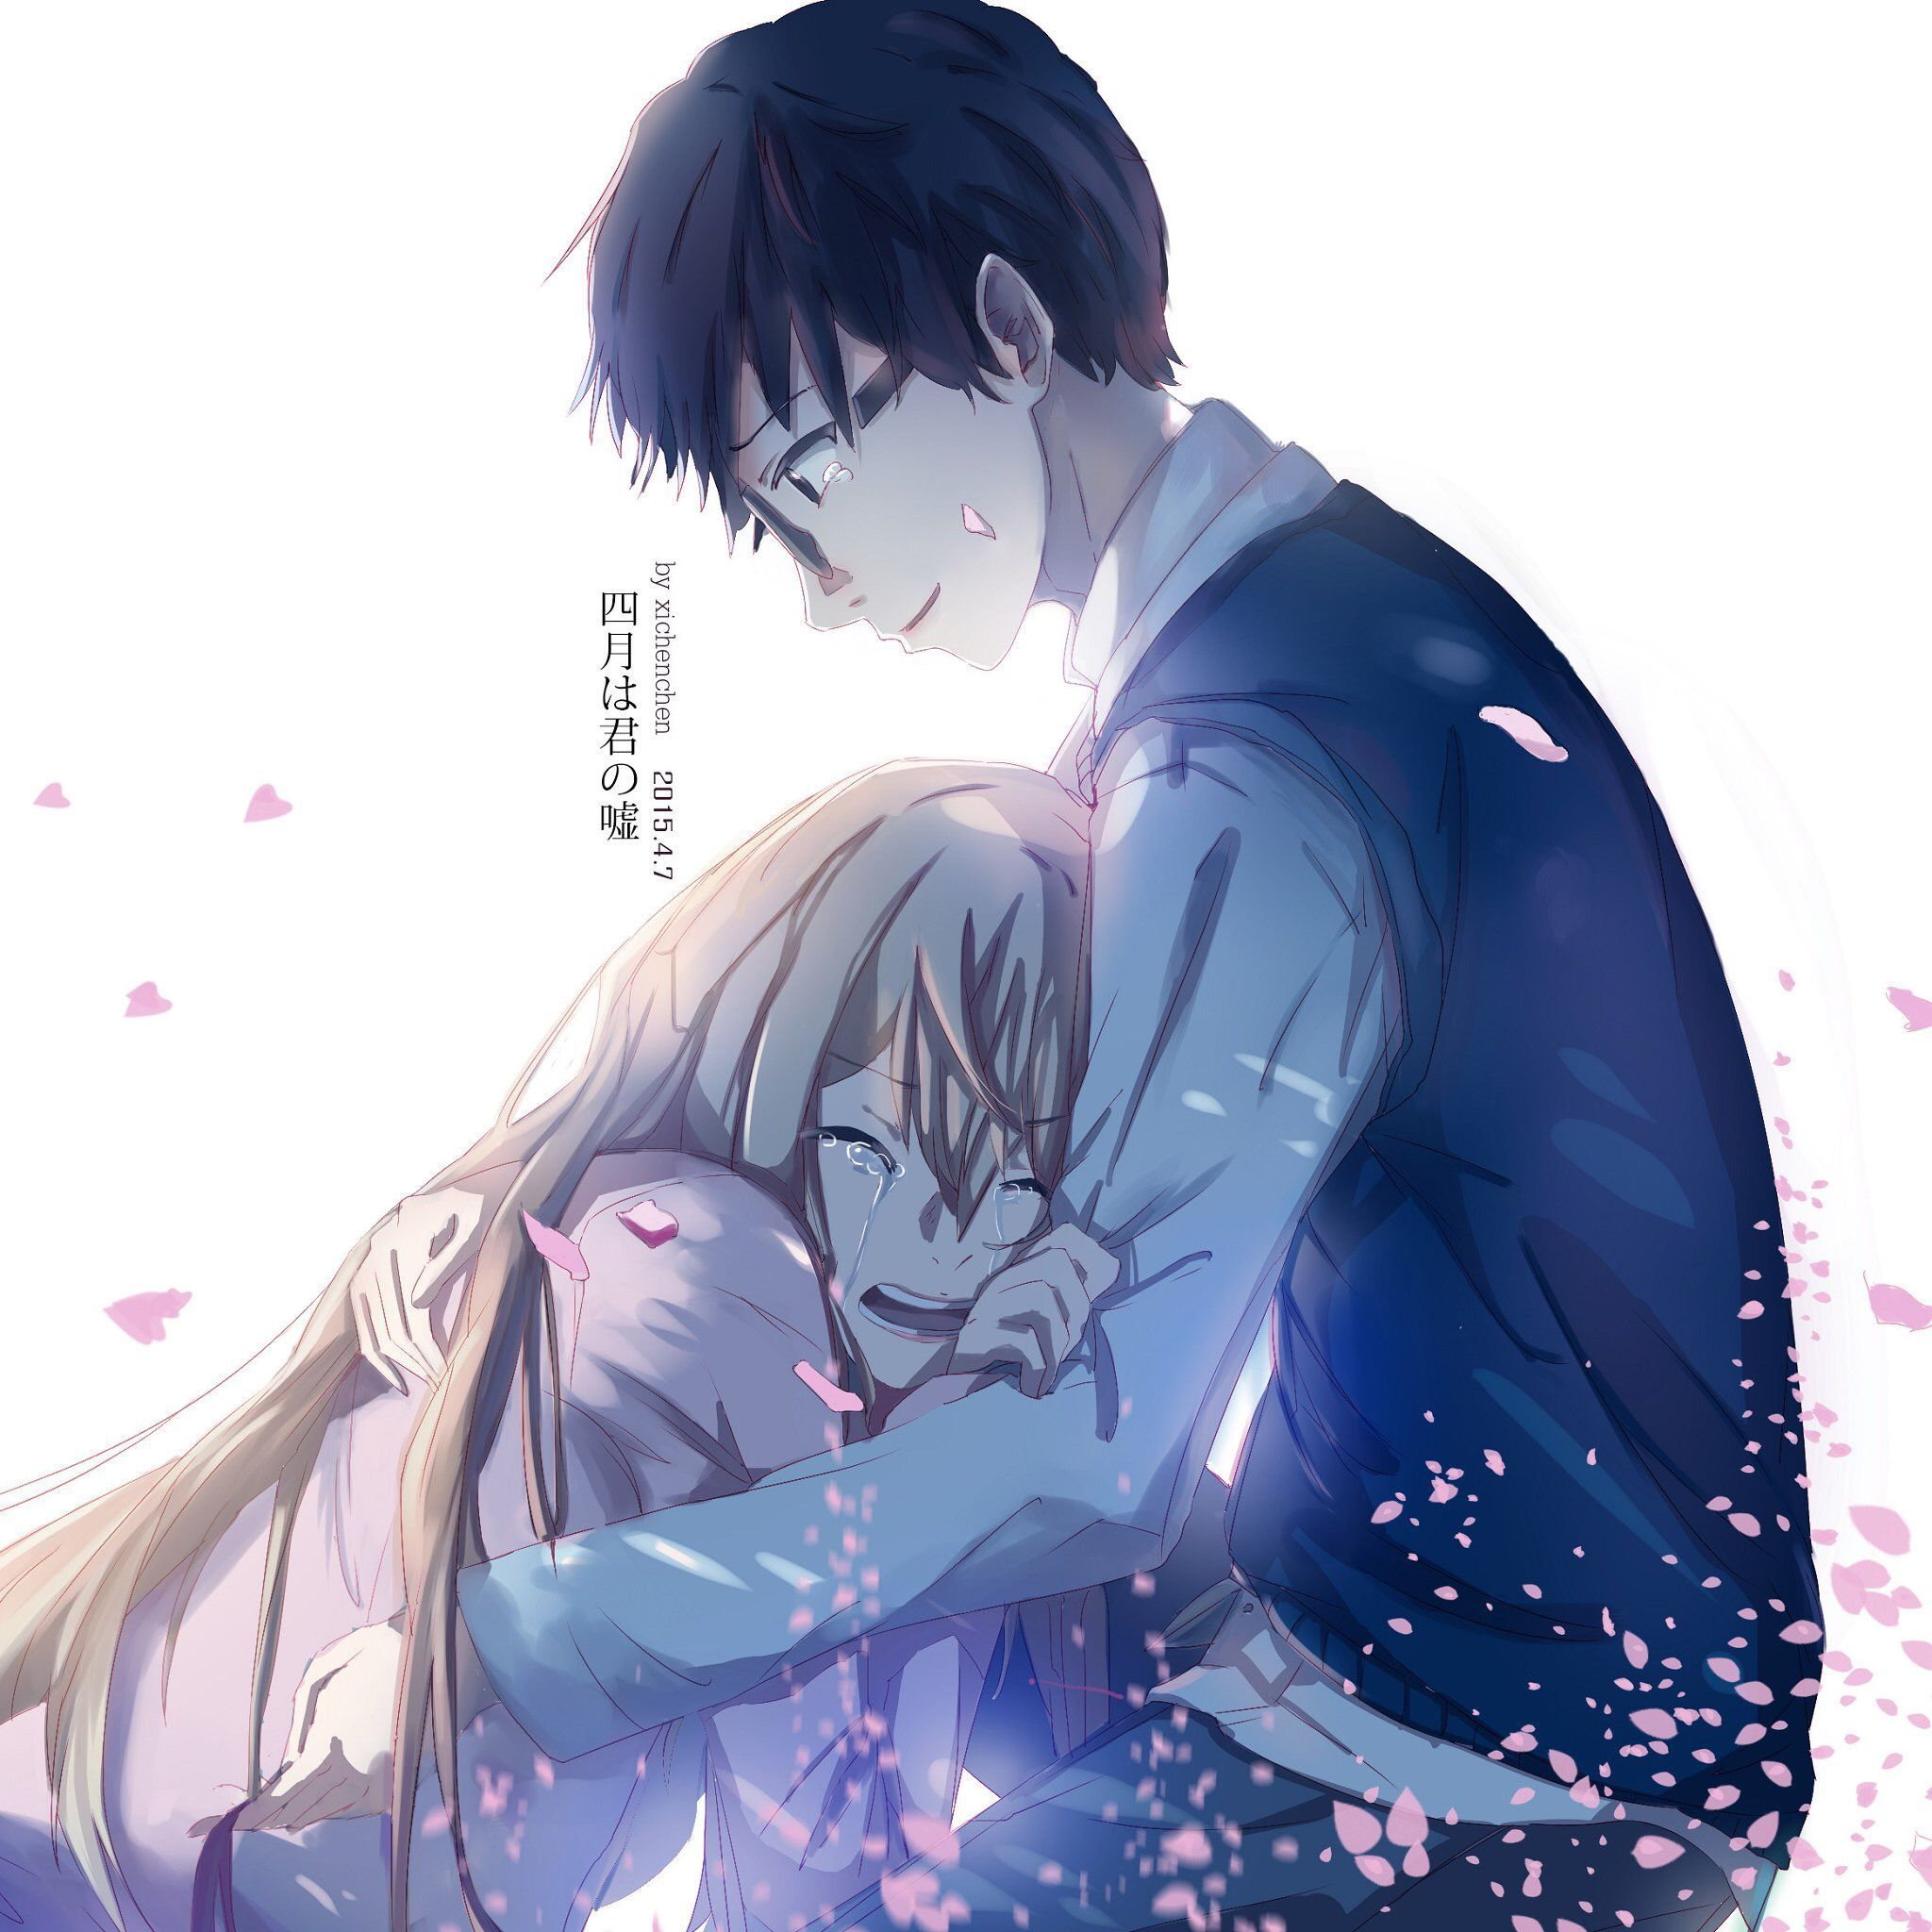 Your Lie In April Anime Wallpapers Top Free Your Lie In April